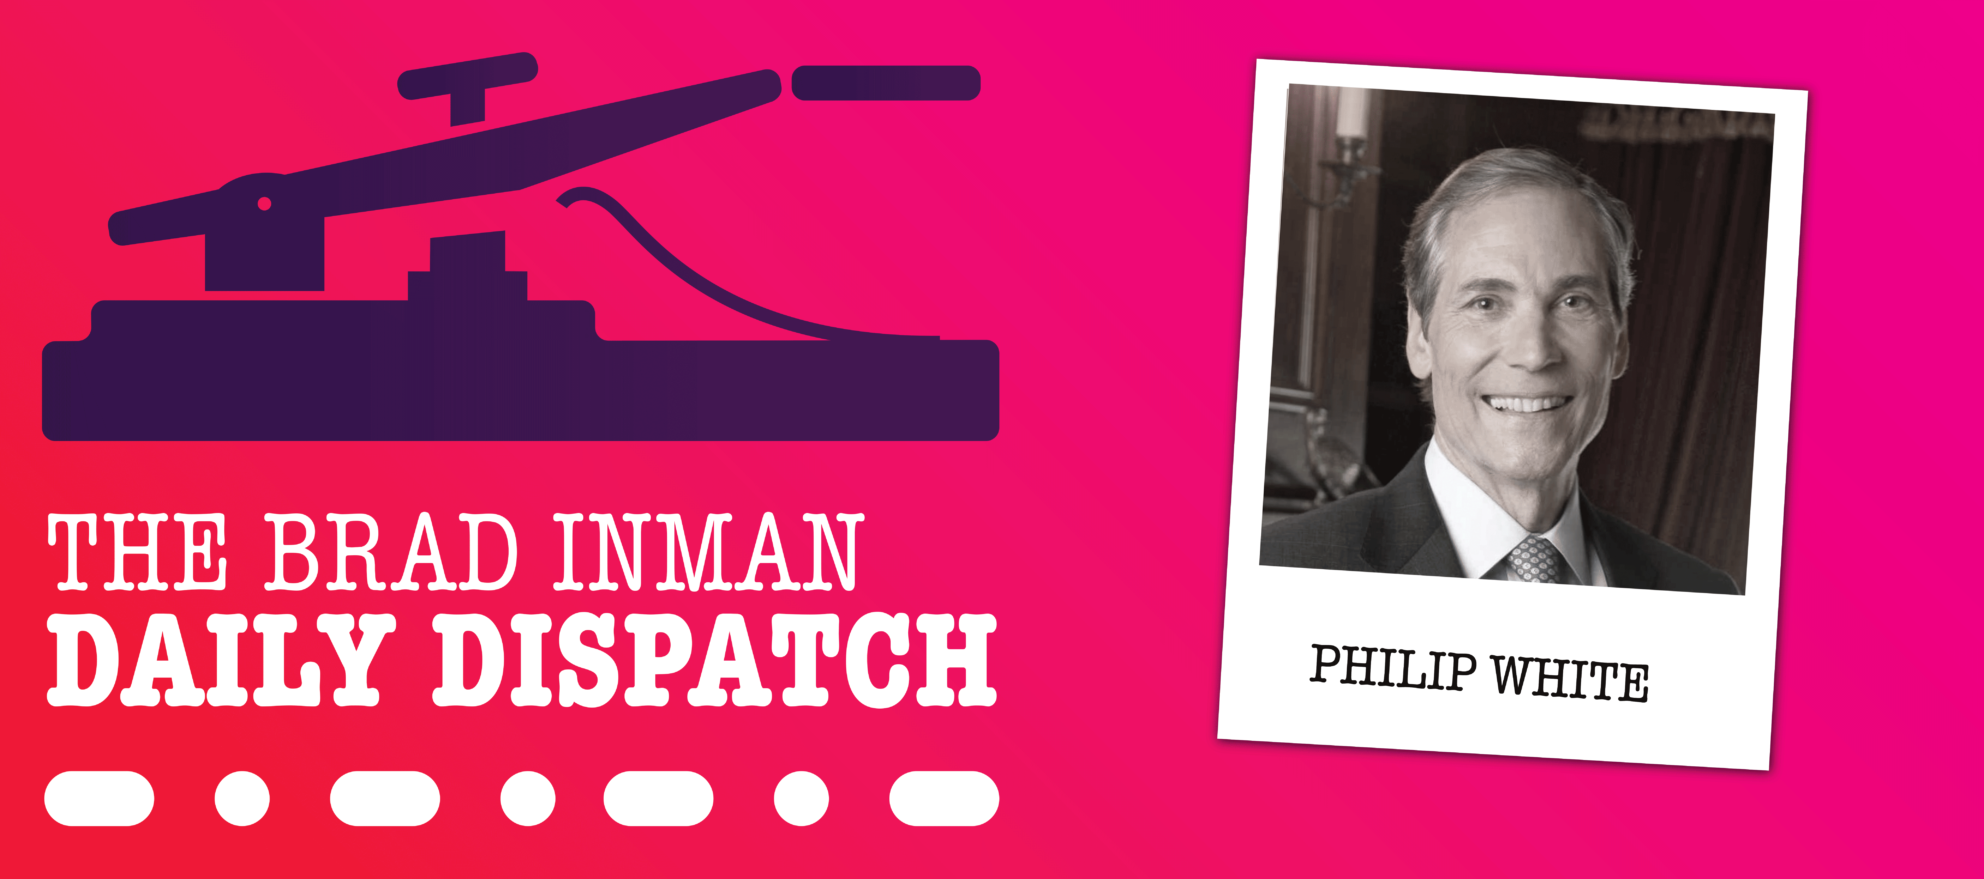 Daily Dispatch: Brad Inman with Philip White